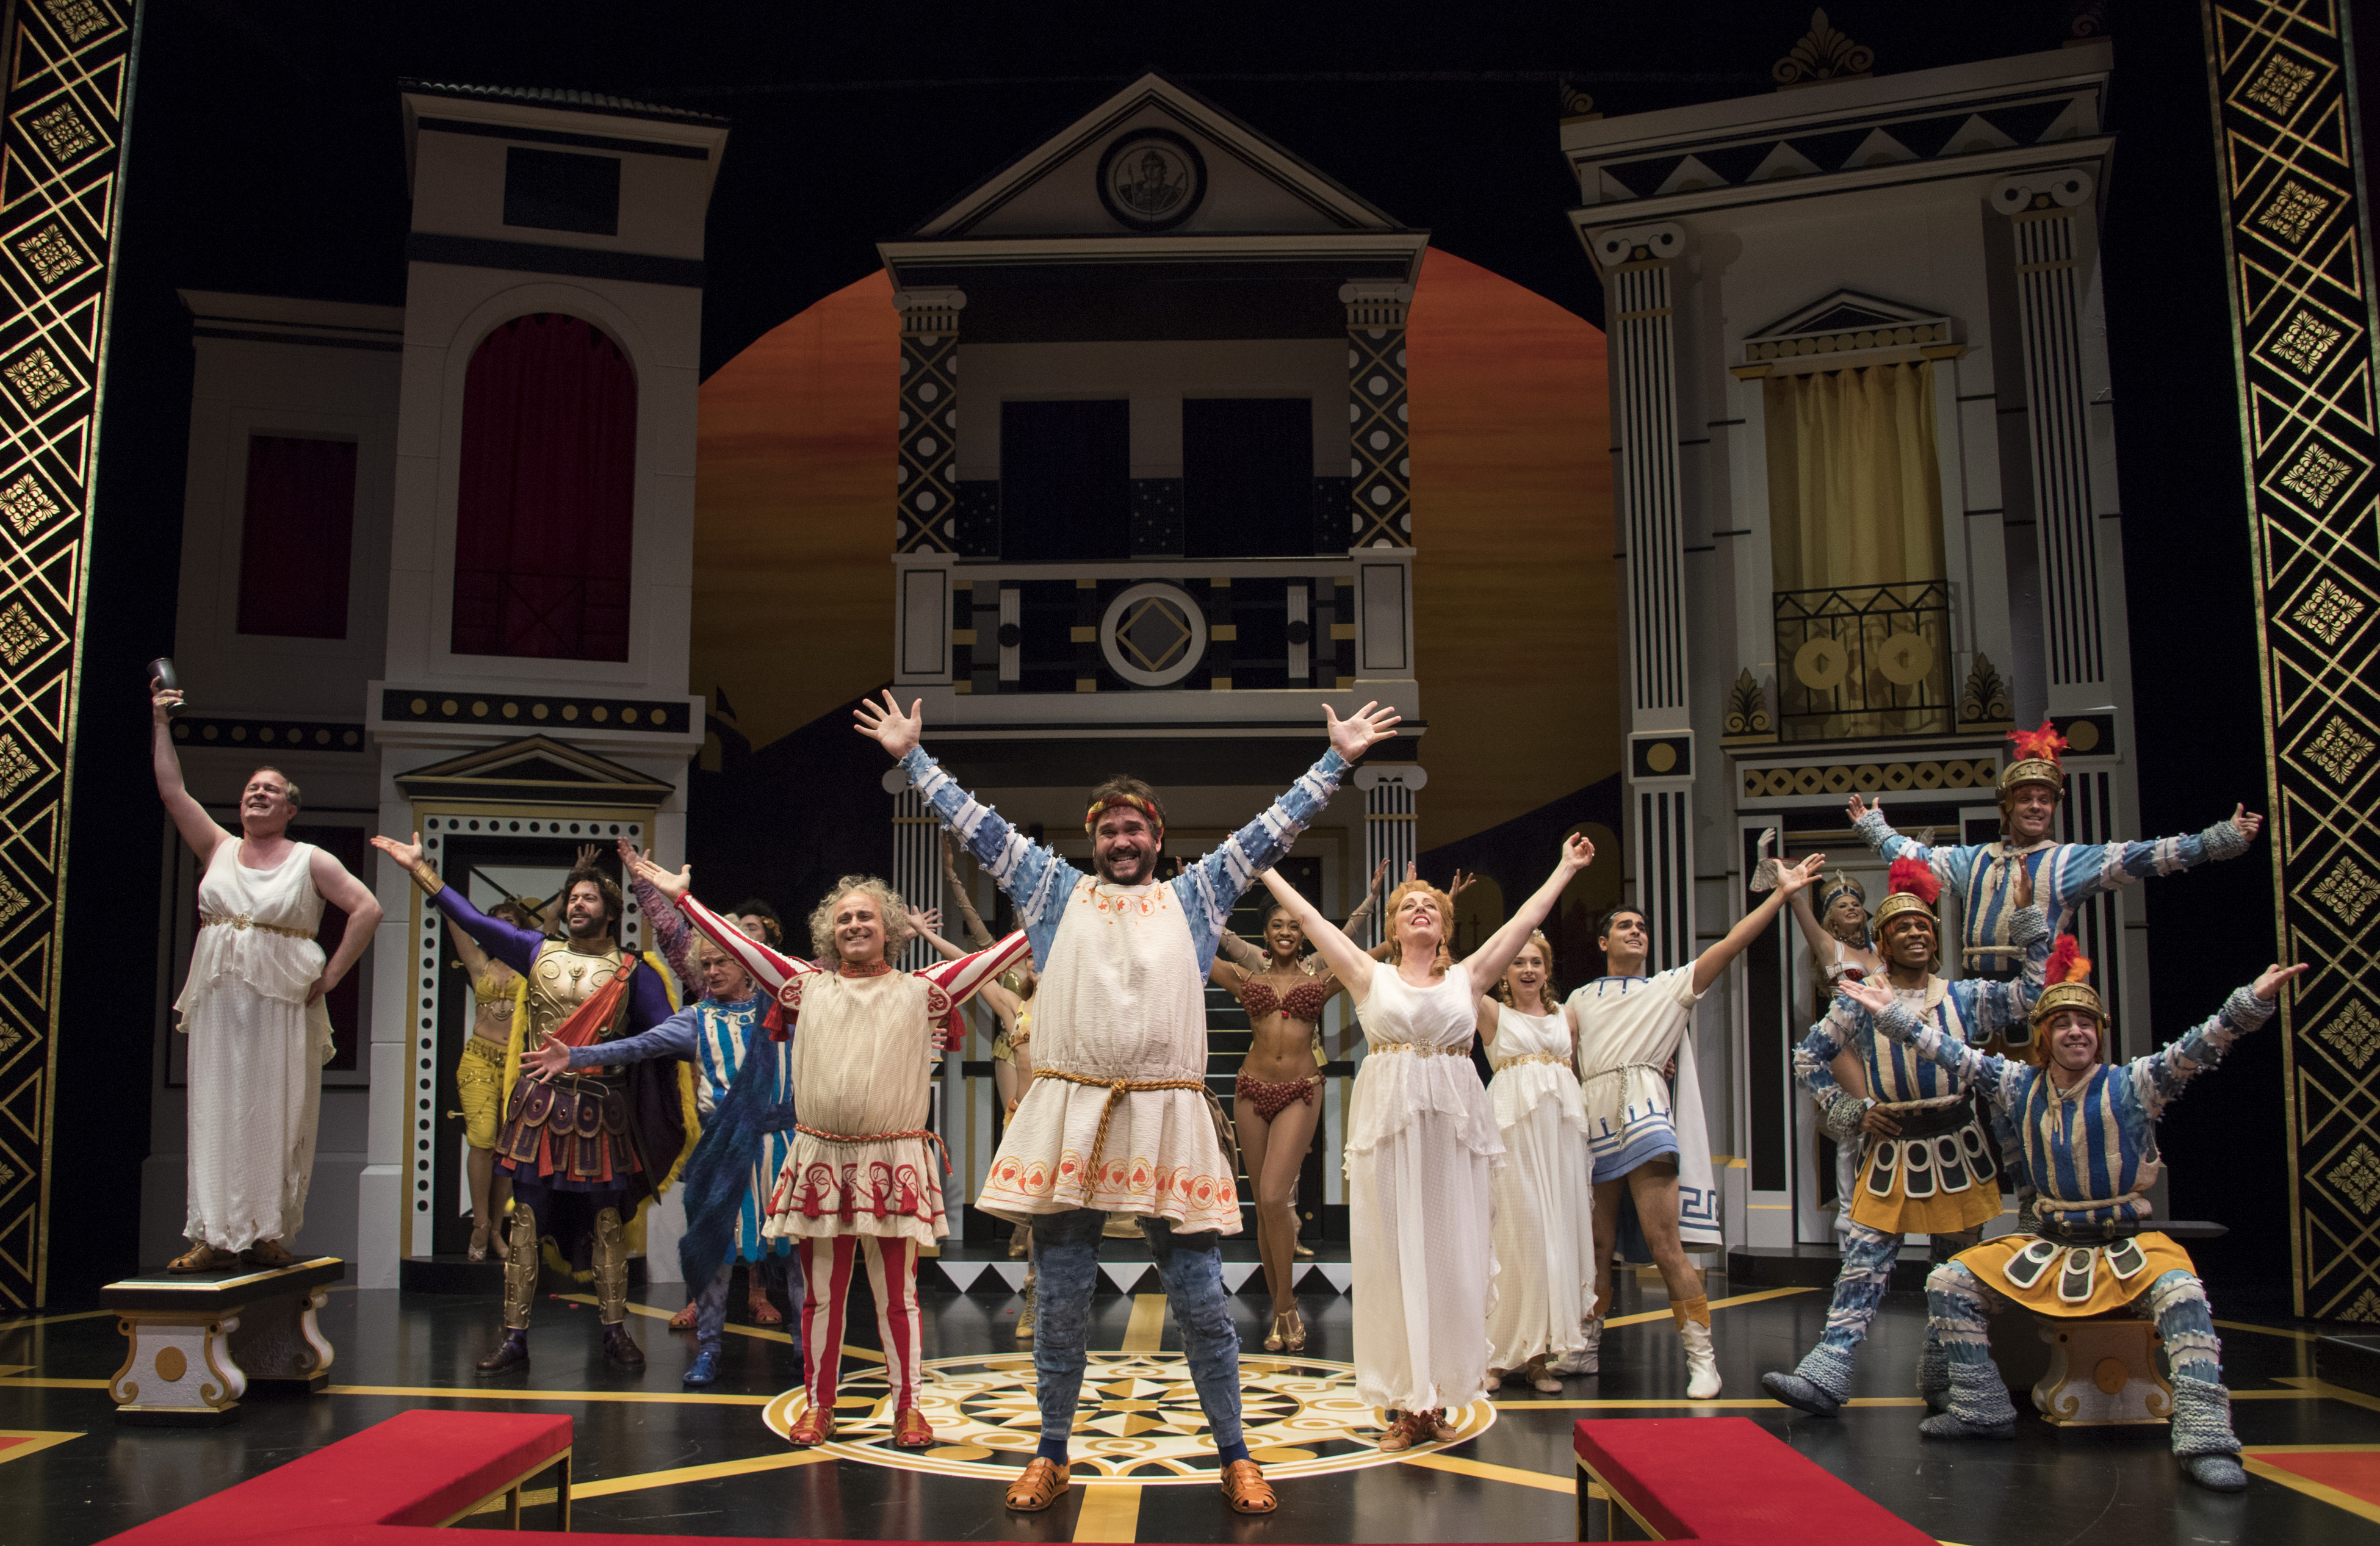 Cast photo for 'A Funny Thing Happened on the Way to the Forum' at Pittsburgh Public Theater. Direction and choreography is by longtime artistic director Ted Pappas. Photo: Michael Henninger.